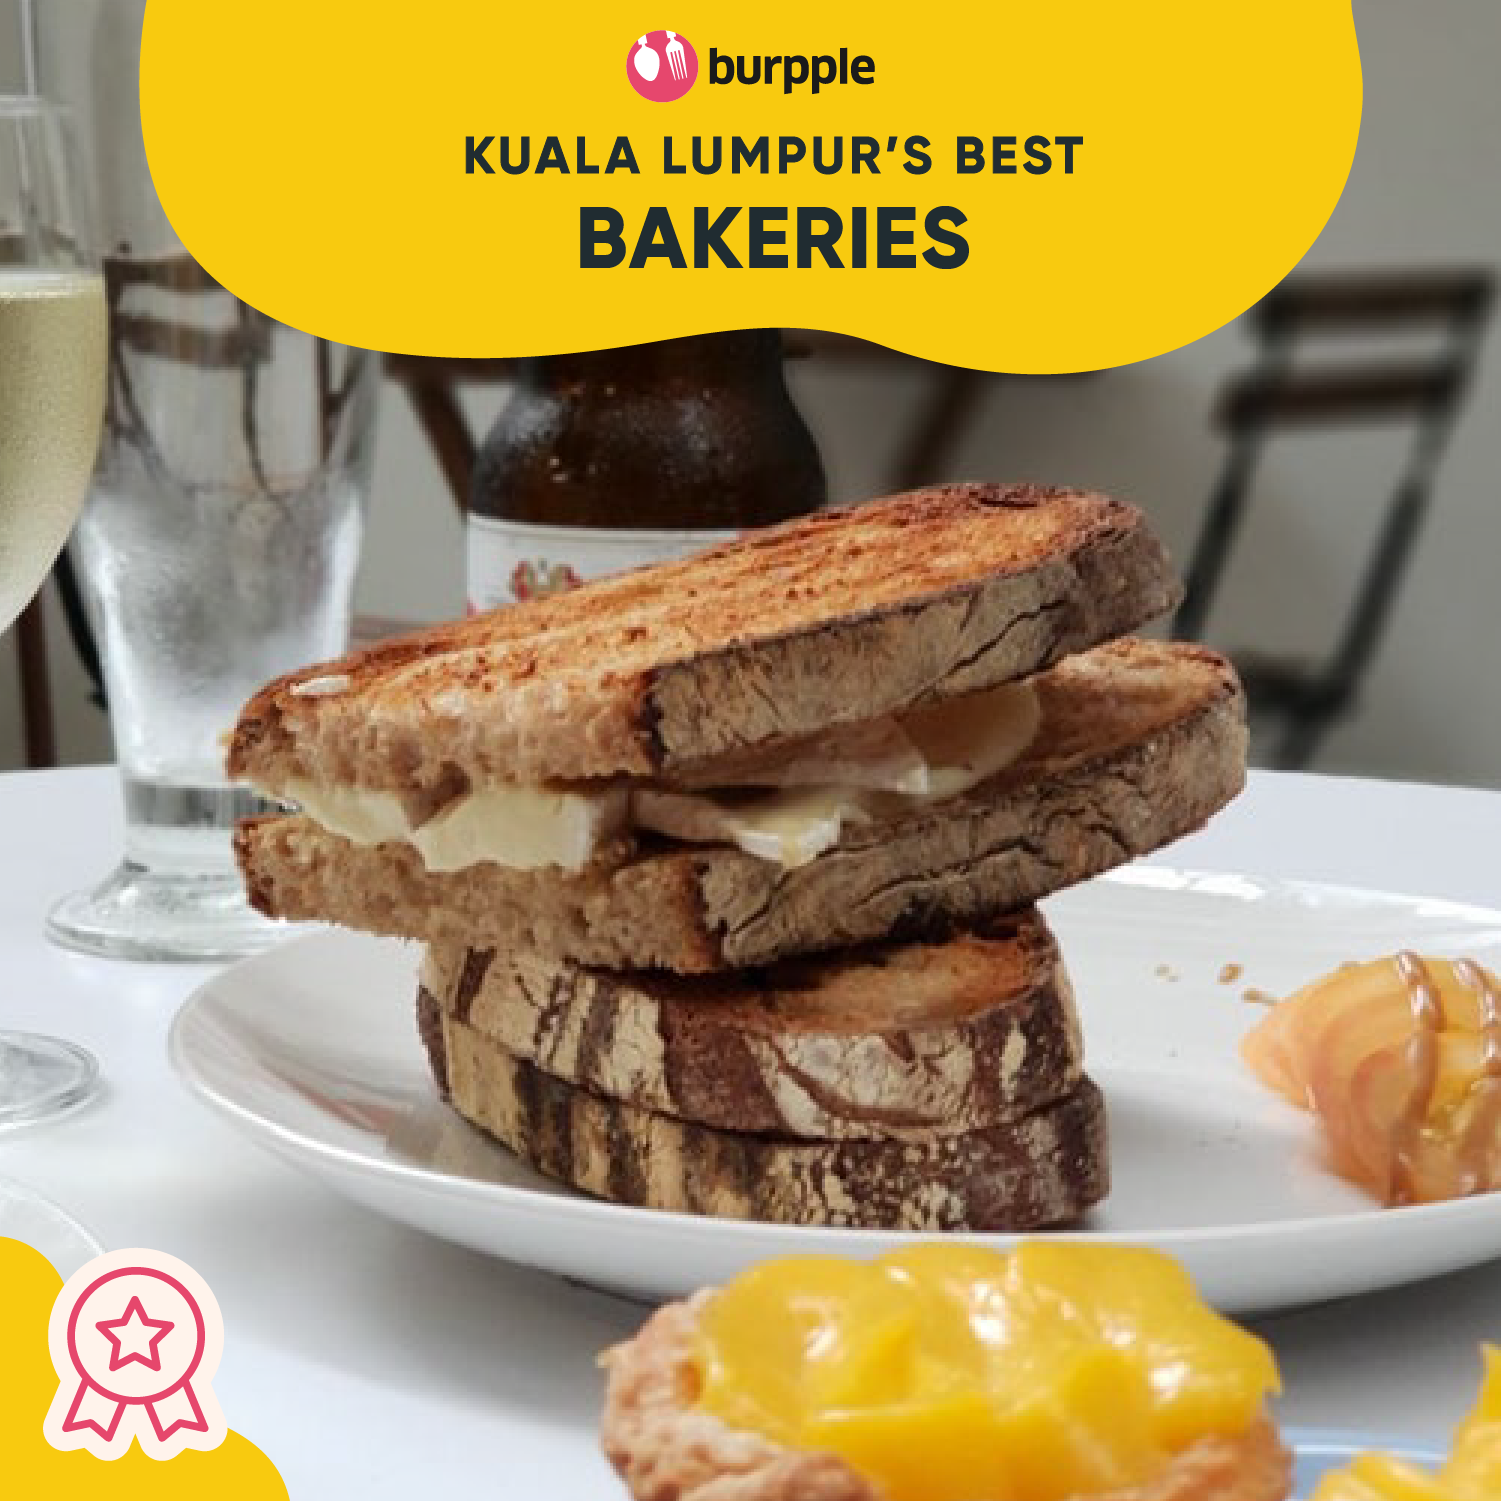 Best Bakeries in Kuala Lumpur for Breads, Pastries, Tarts & More